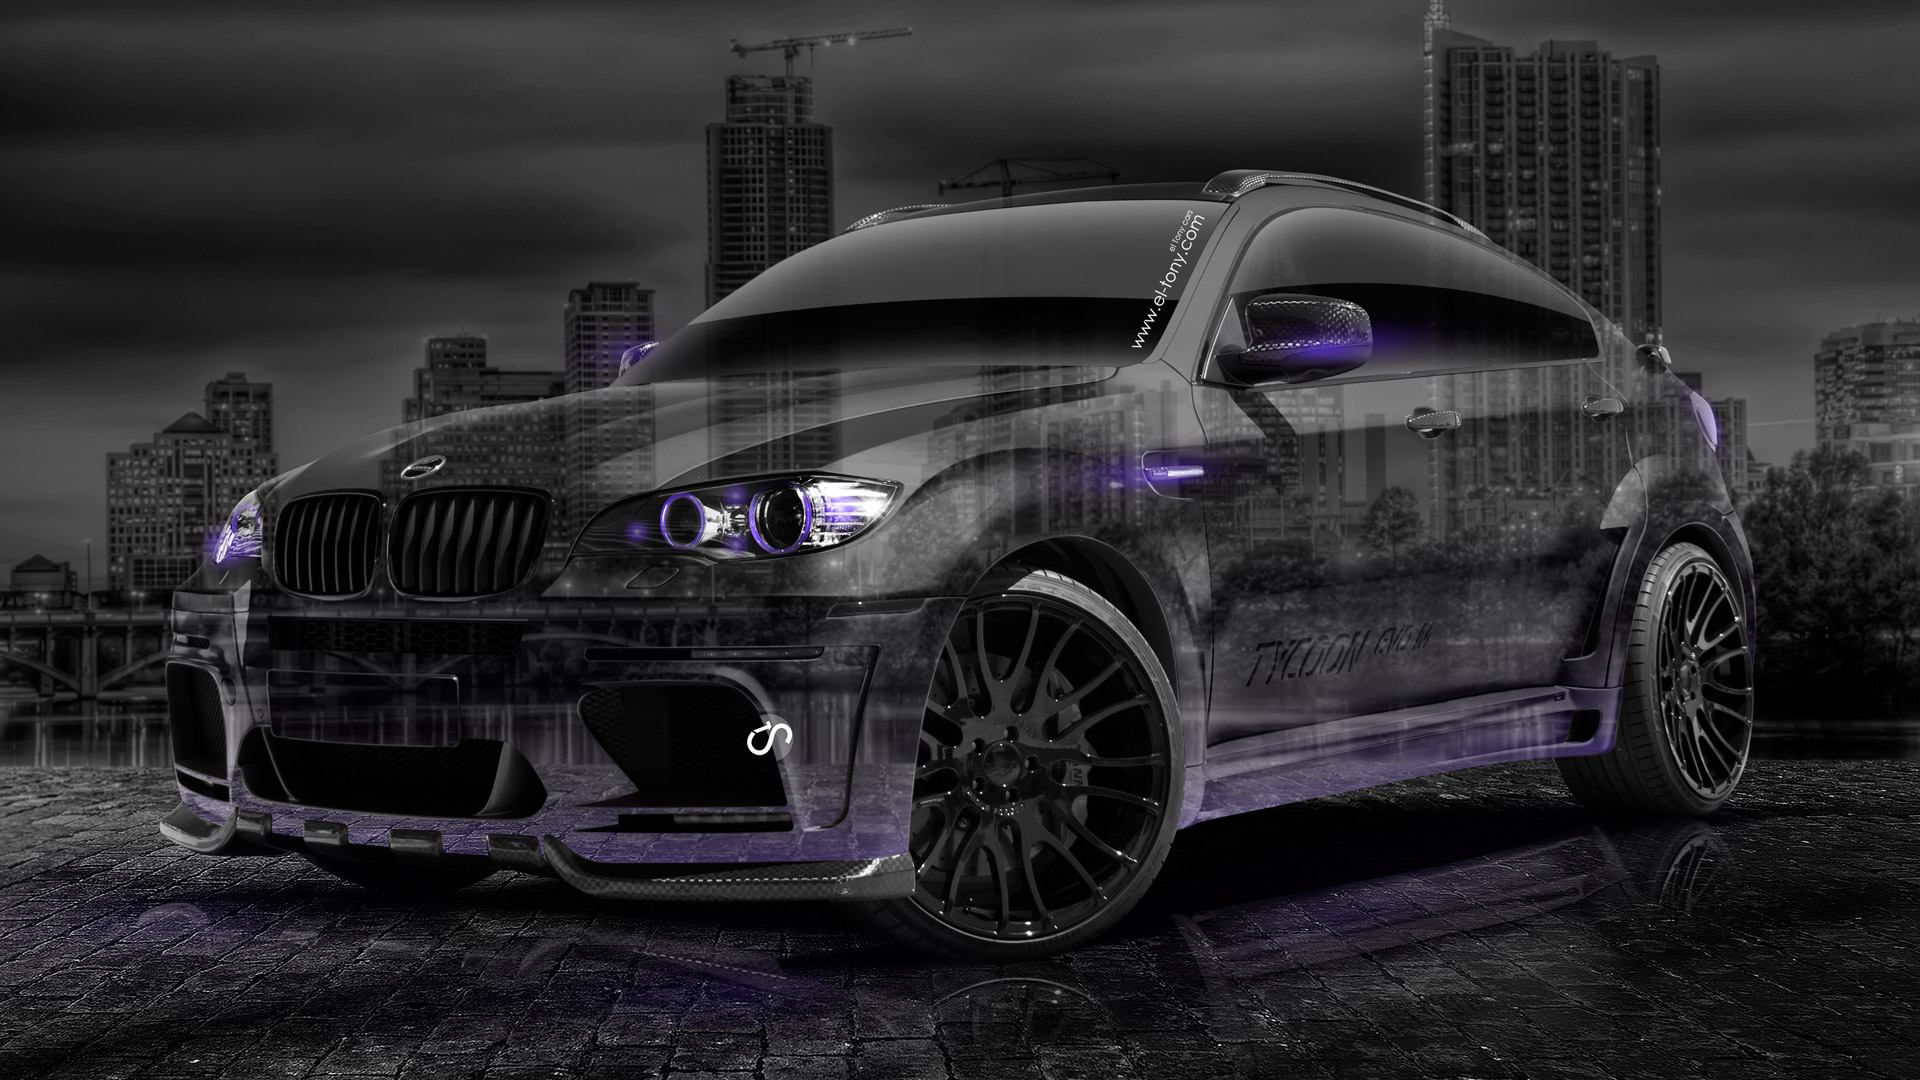 Great Bmw X6 Crystal City Car